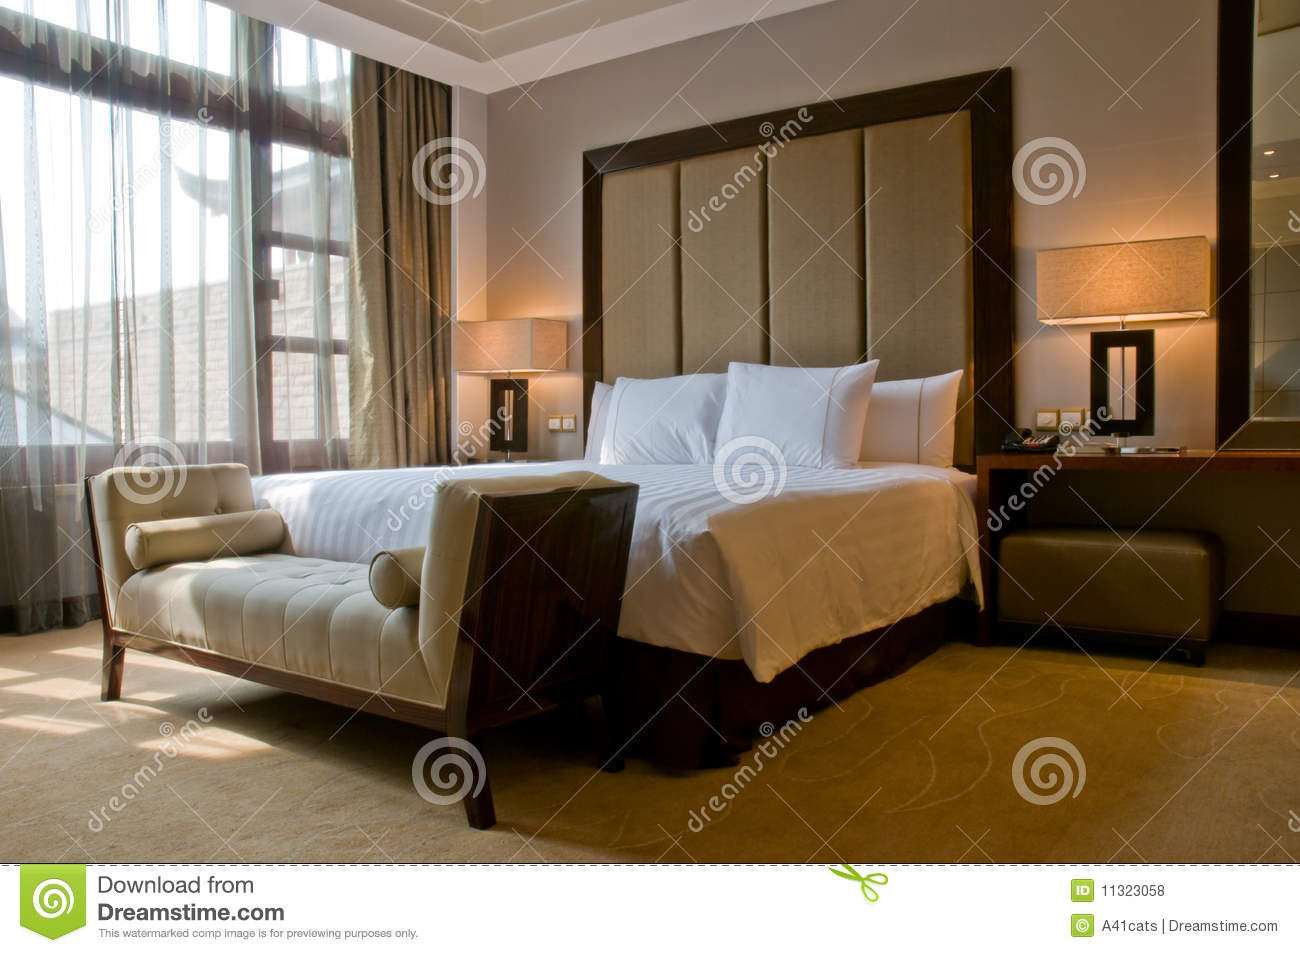 Modern vintage bedroom - King Size Bed In A Five Star Hotel Suite Room Royalty Free